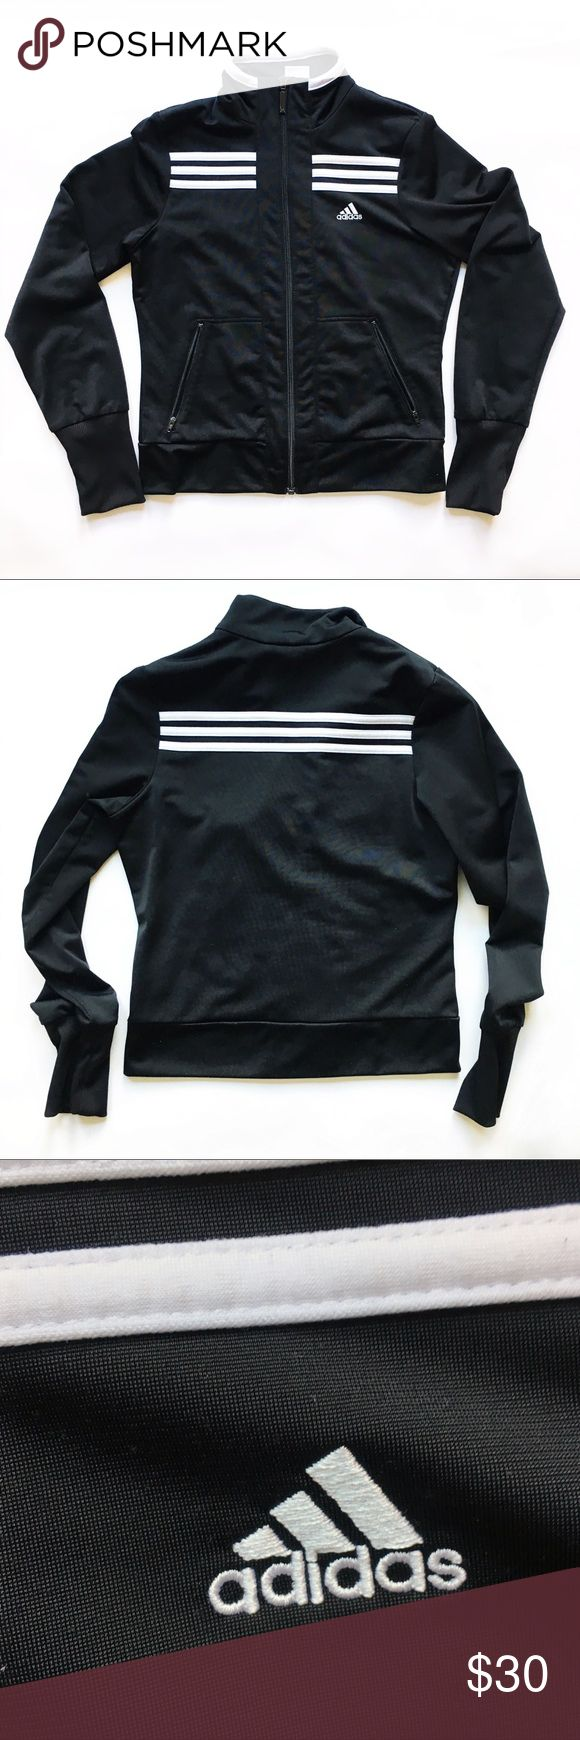 "Adidas Black and White Zip-Up Hoodie Adidas black and white classic stripes zip up hoodie Front zip closure  Slim fit  Zip up front pockets Classic stripes detail  Logo in the front Excellent Used Condition  • Approximate measurements unstretched • Length (shoulder to hem): 21"" • Bust (pit to pit): 17"" • Waist (laying flat across): 15"" Sleeves (pit to cuff): 21"" adidas Jackets & Coats"